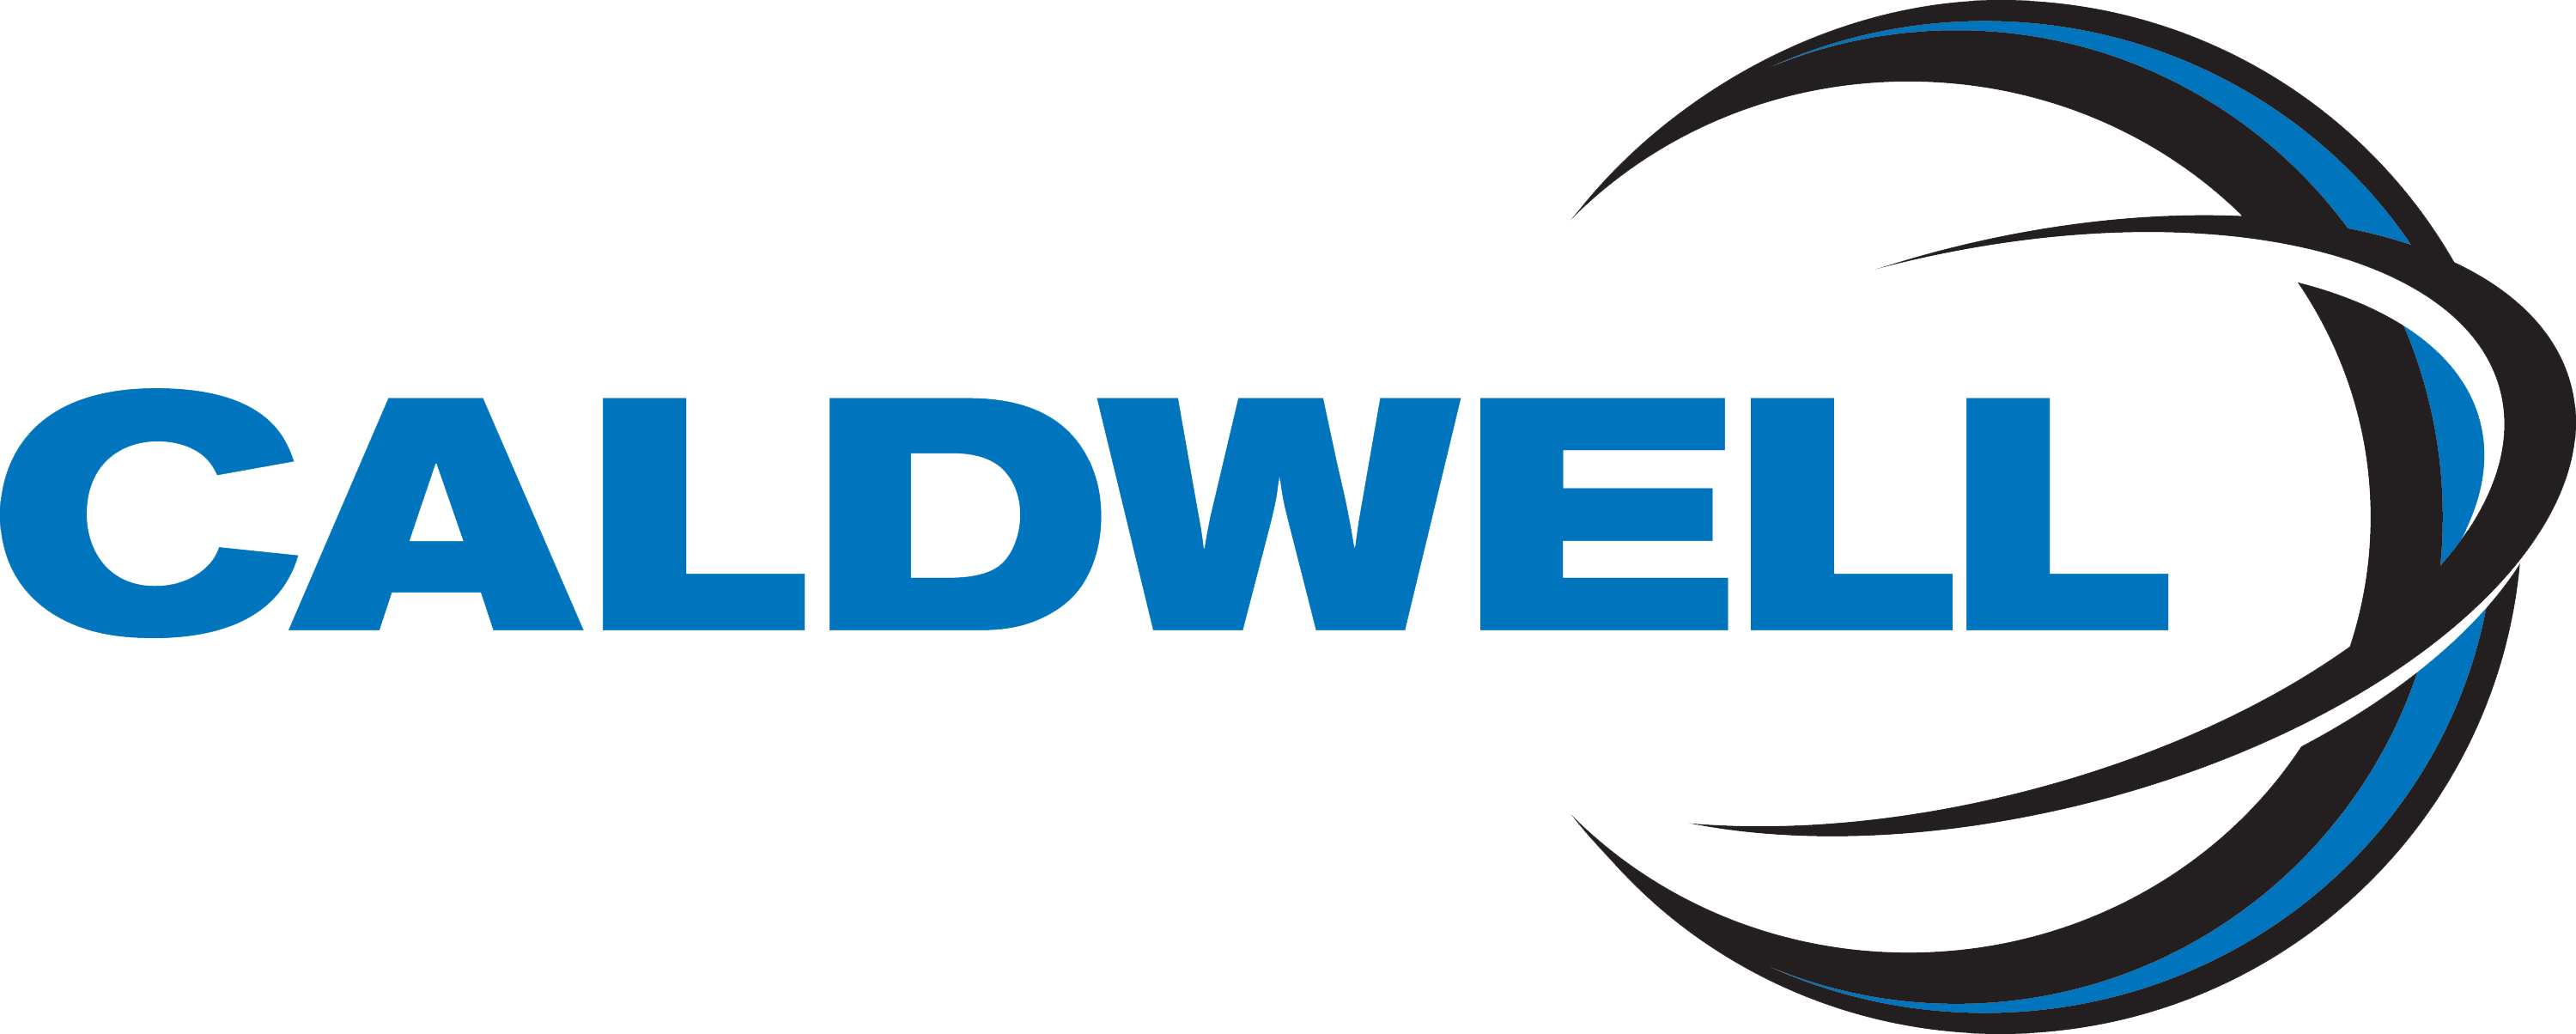 Caldwell Hardware (UK) Ltd